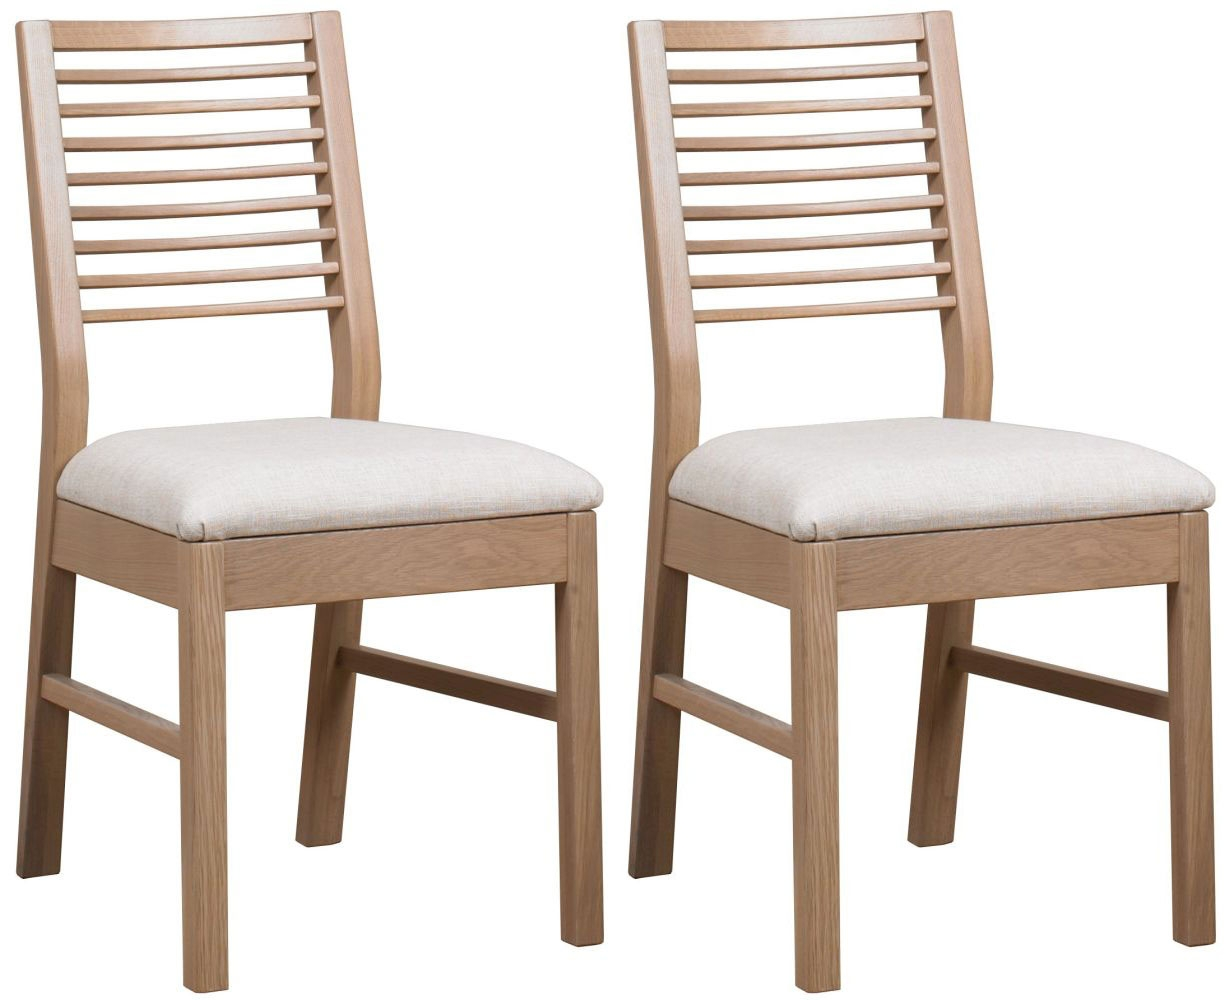 Mark Webster Painted Geo Oak Dining Chair with Fabric Seat Pad (Pair)